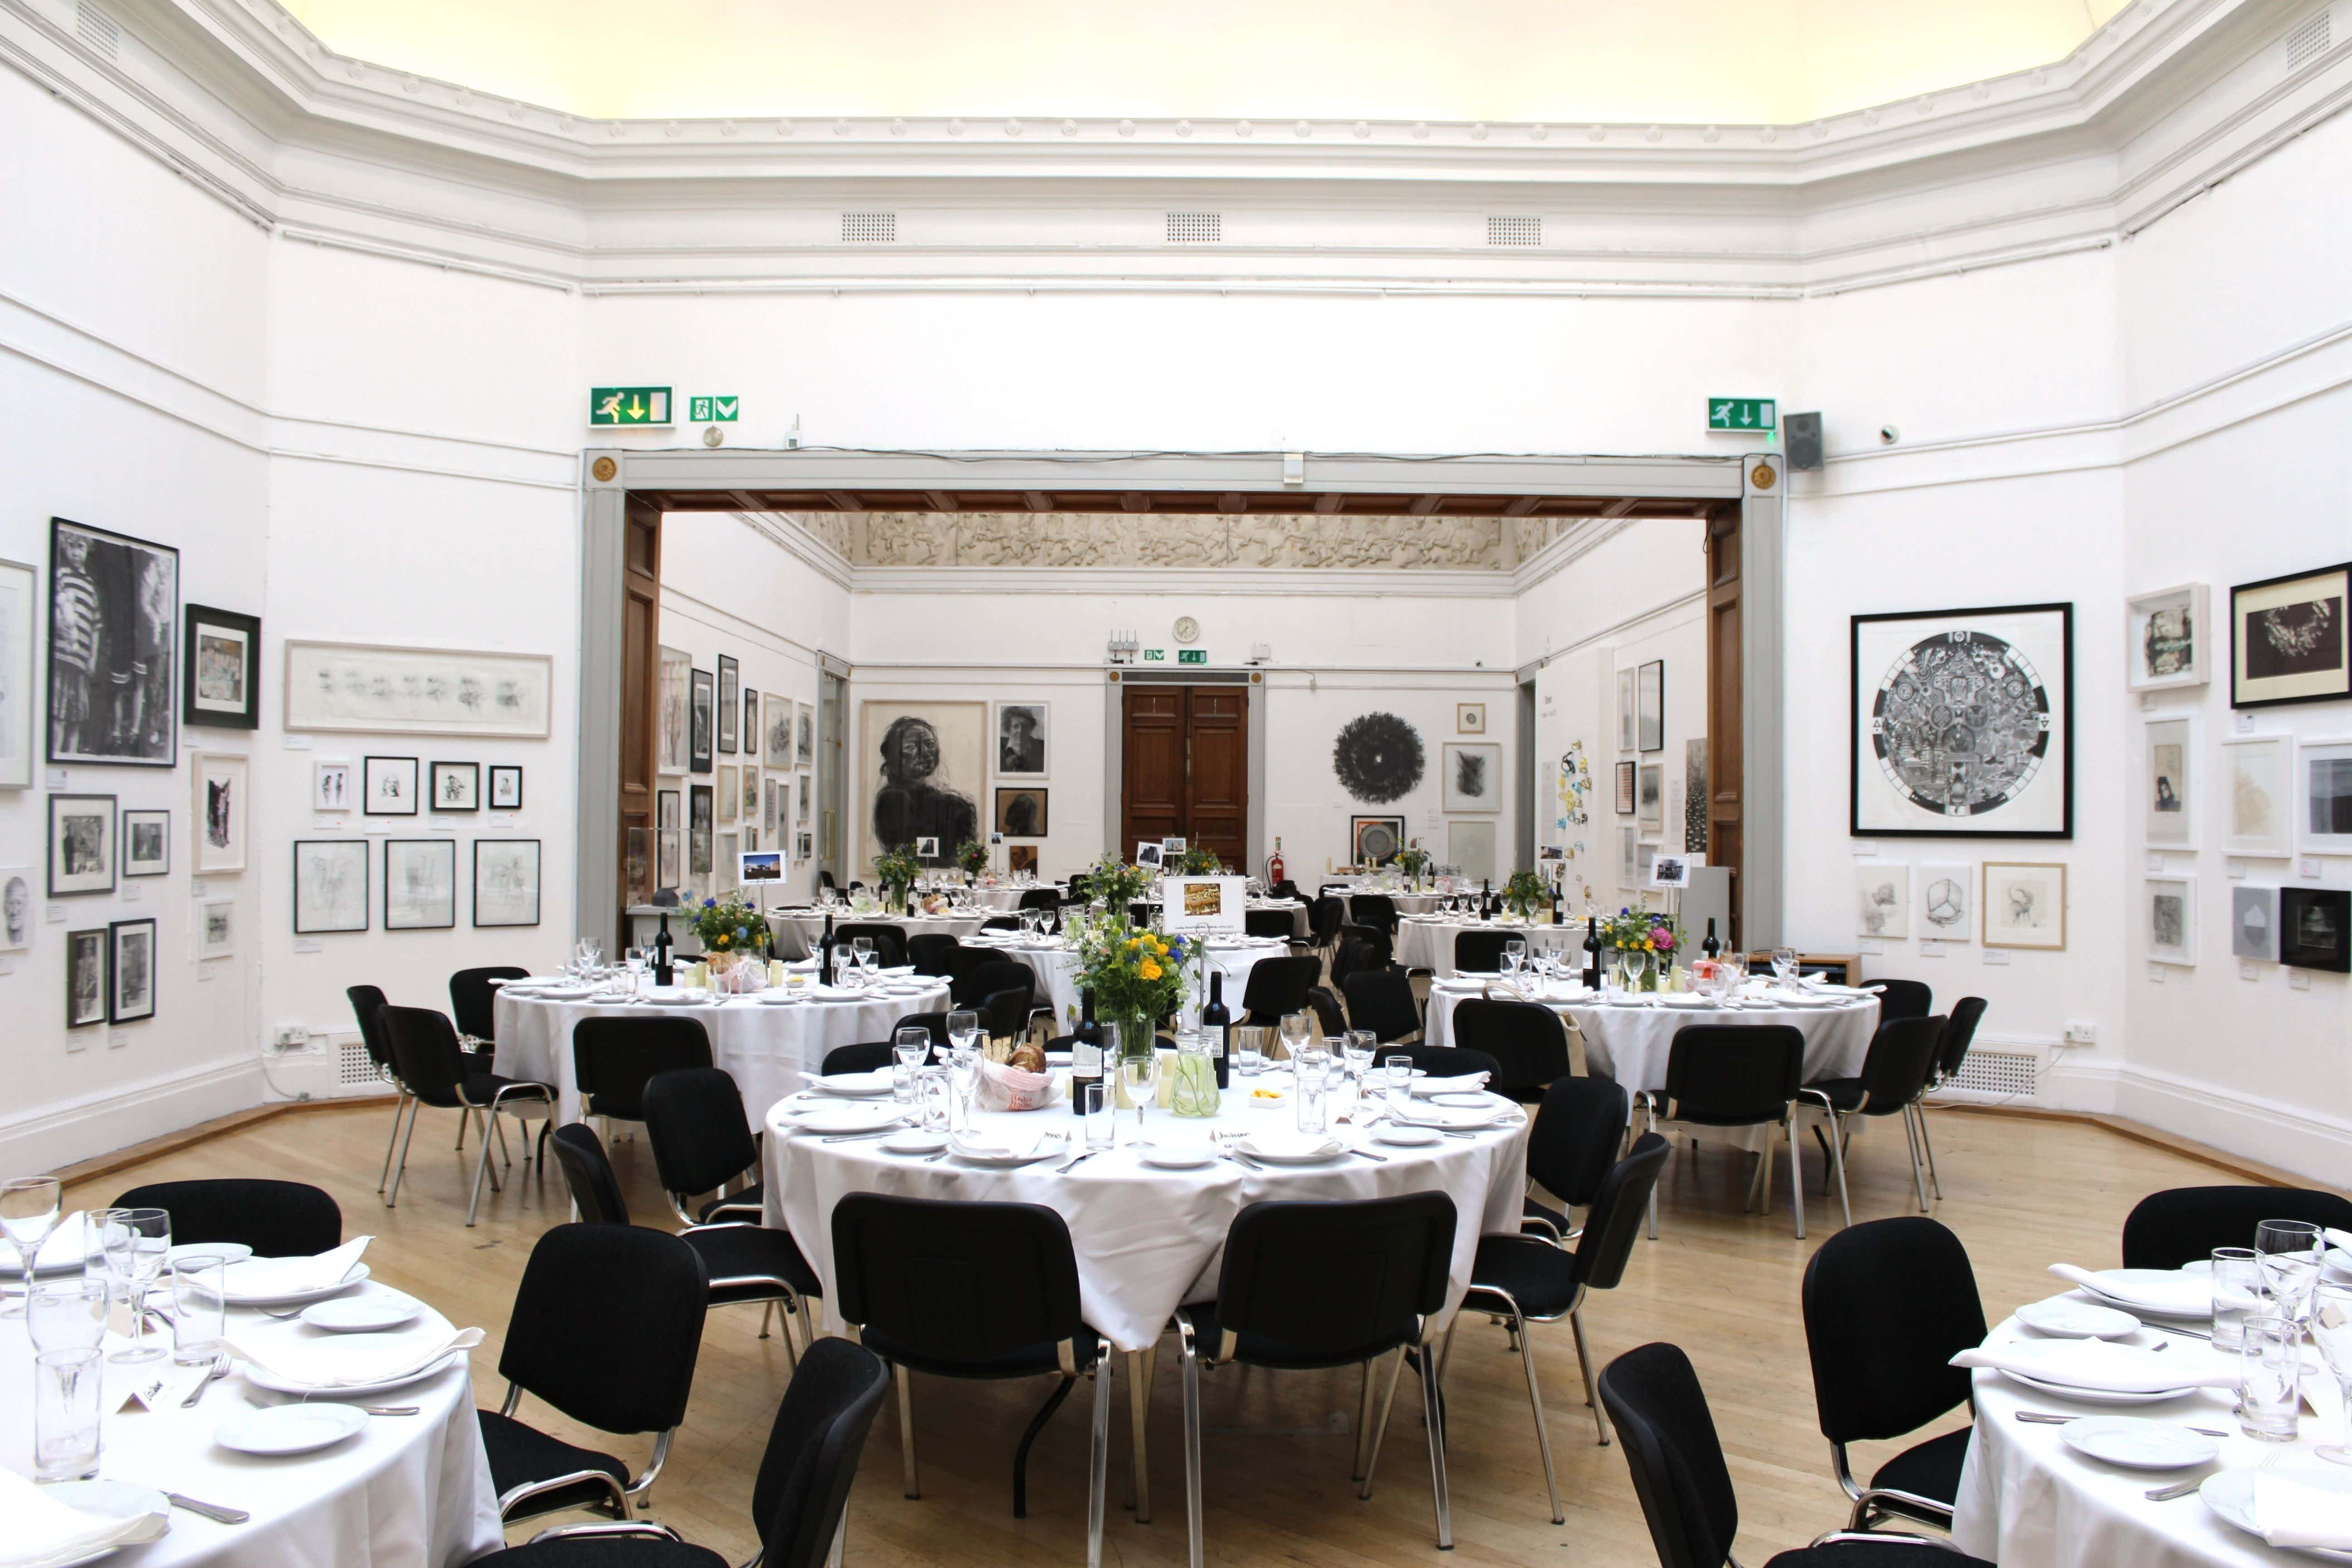 Sharples & Winterstoke Galleries, Royal West of England Academy